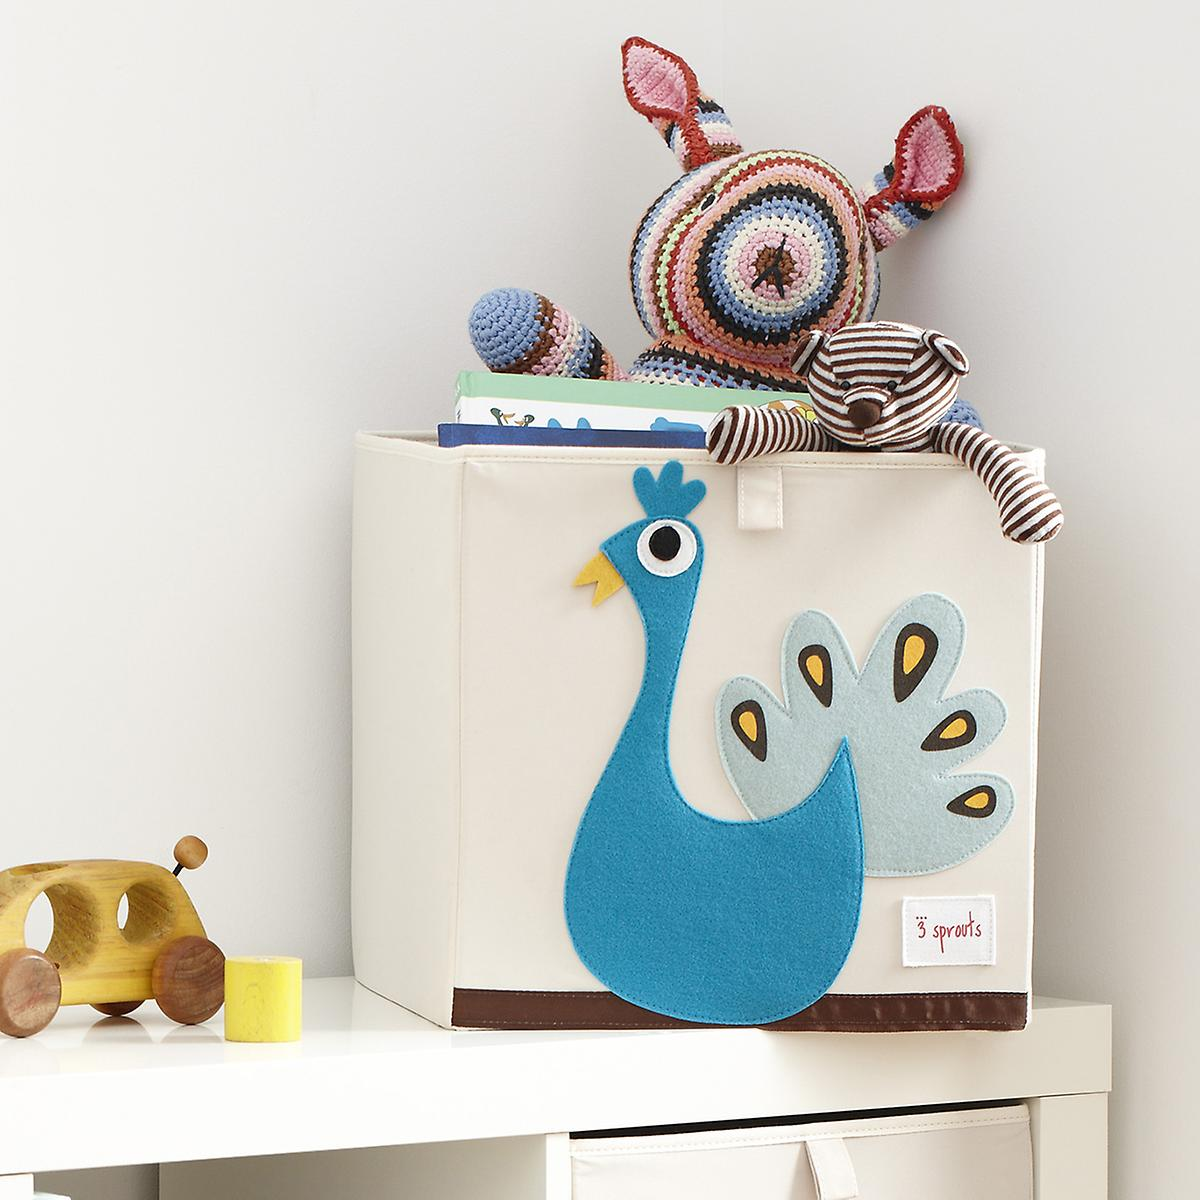 sprouts peacock storage cube  the container store - peacock storage cube by  sprouts ·  ·  roll over to zoom